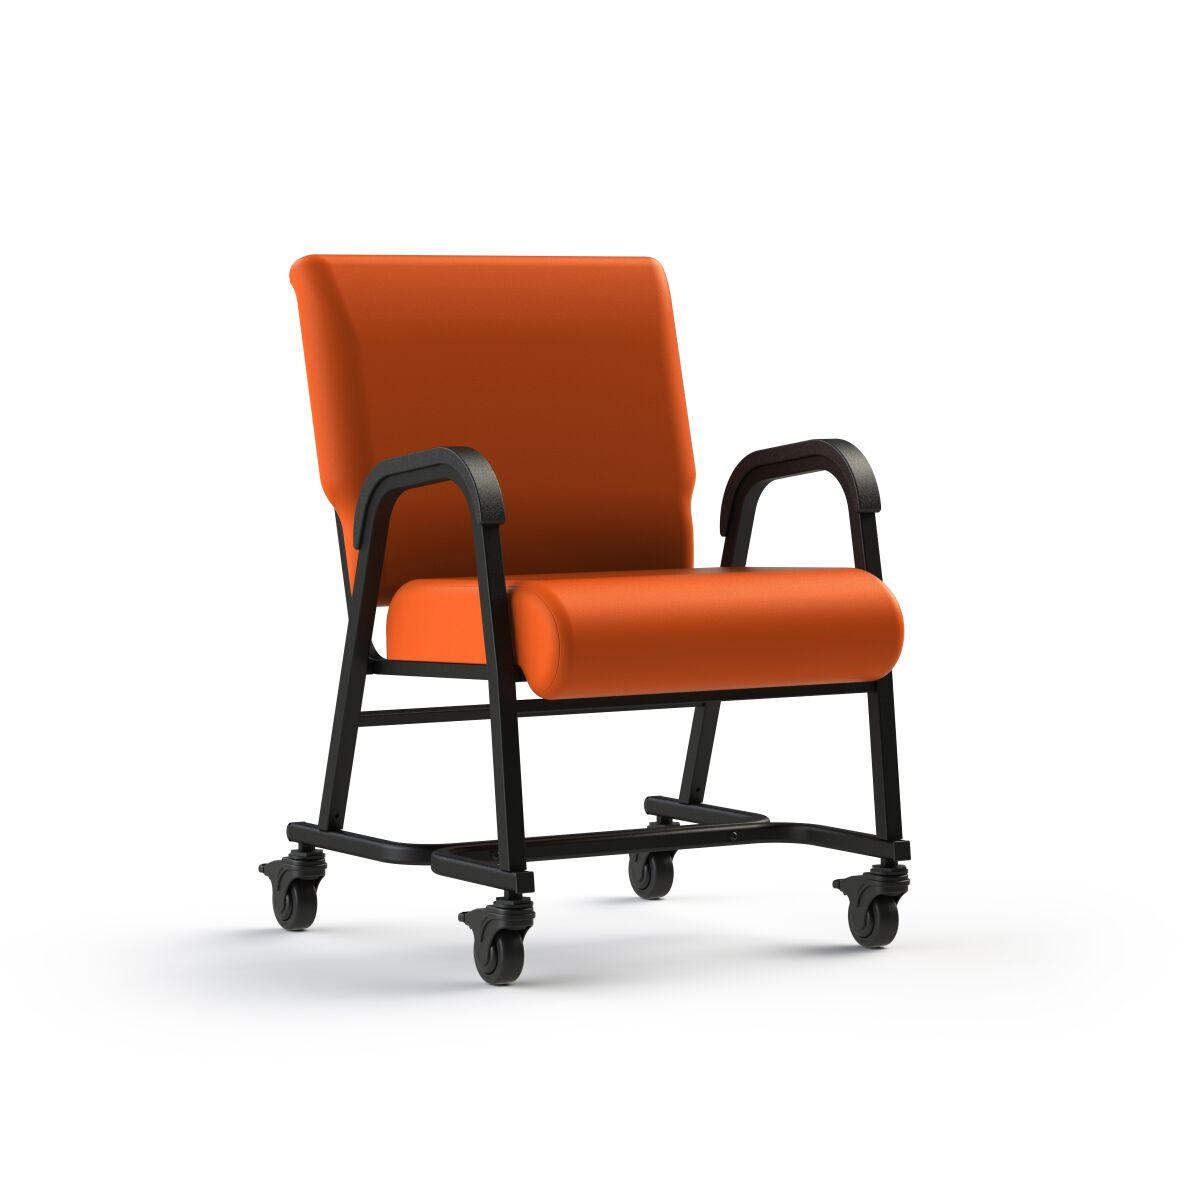 ComforTek Titan Bariatric Mobility Assist Chair w/Casters 600lbs - Kitchen/Dining/Desk - Tangerine